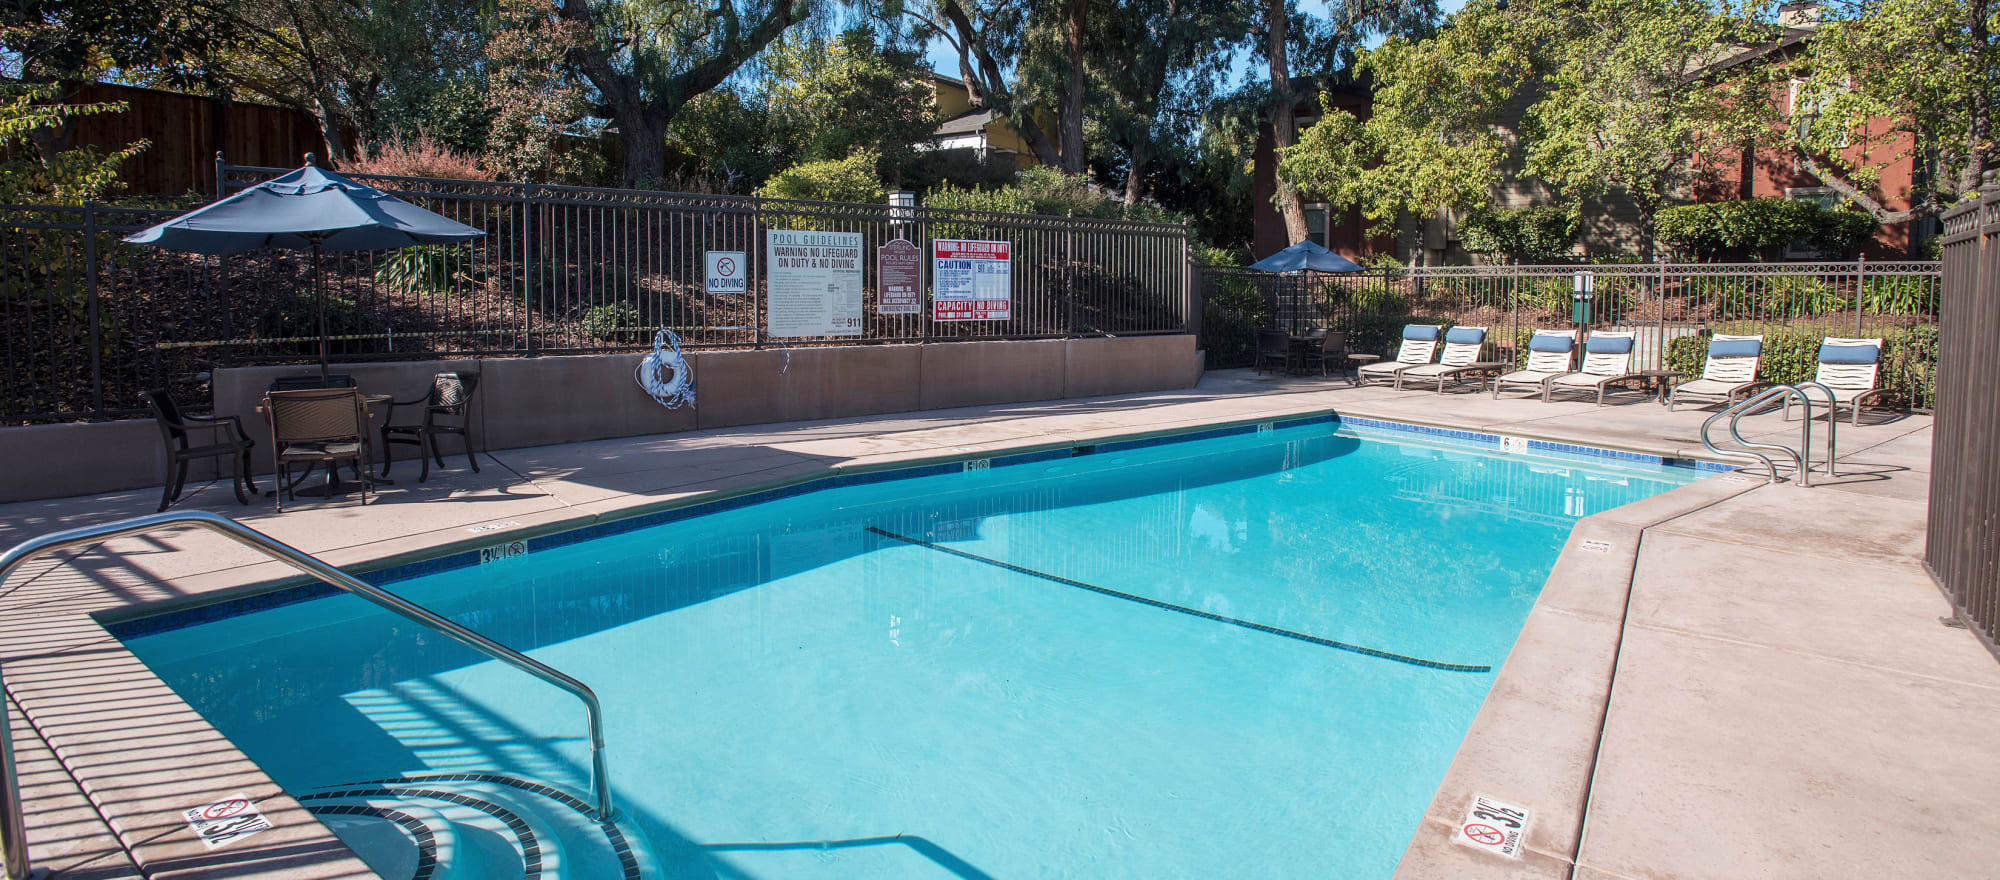 Gorgeous swimming pool at Sterling Heights Apartment Homes in Benicia, California